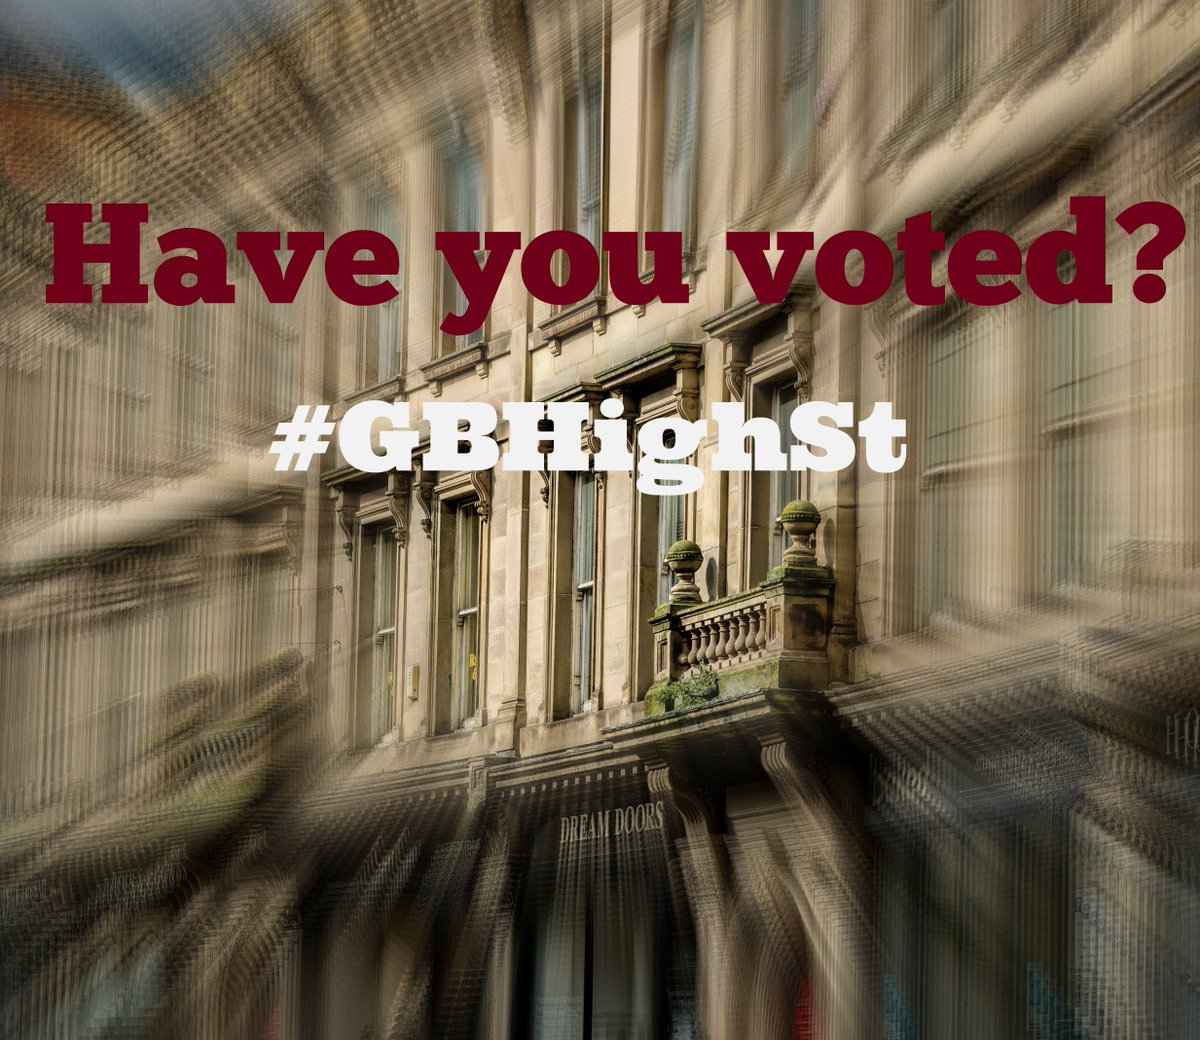 Please help us to win this year's award by voting now: ow.ly/RGM5305oOfO #GBHighSt